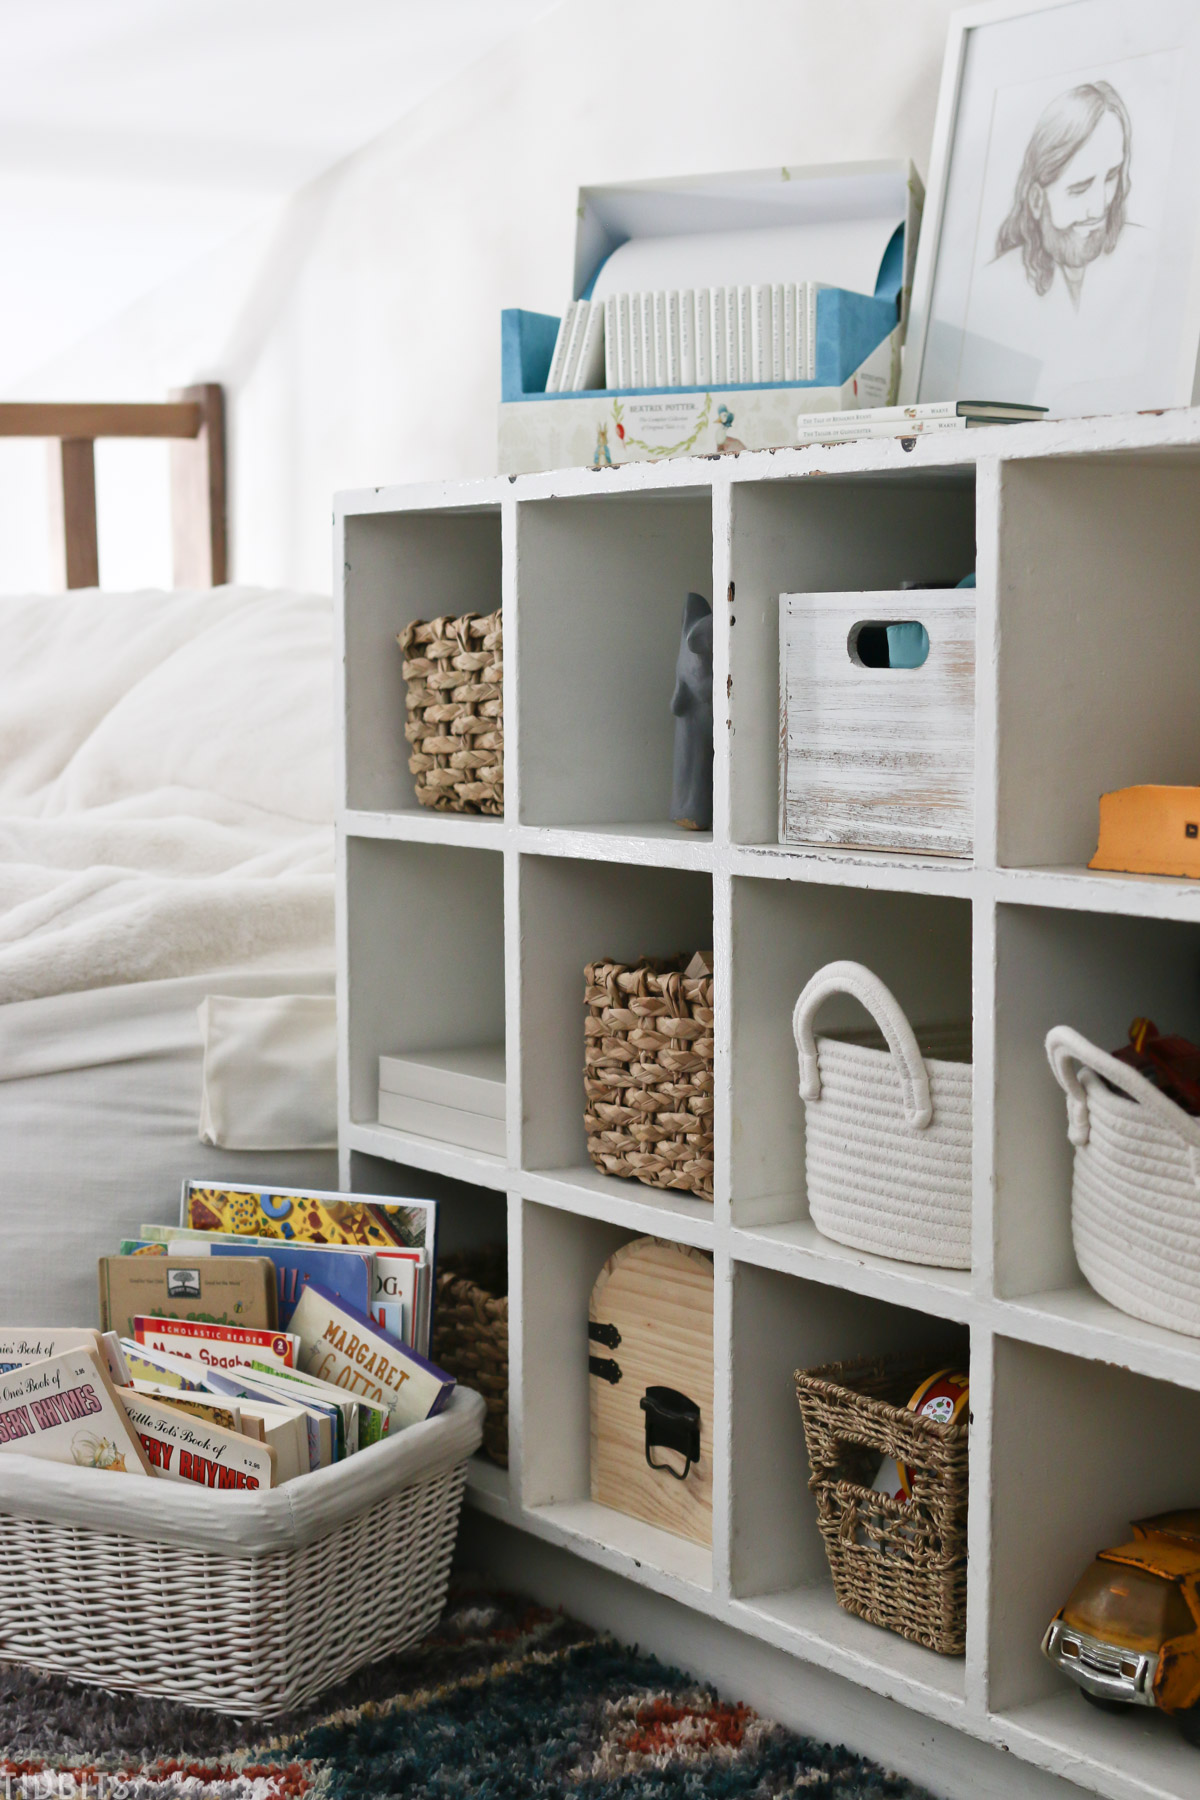 storage cubby with baskets and books on top